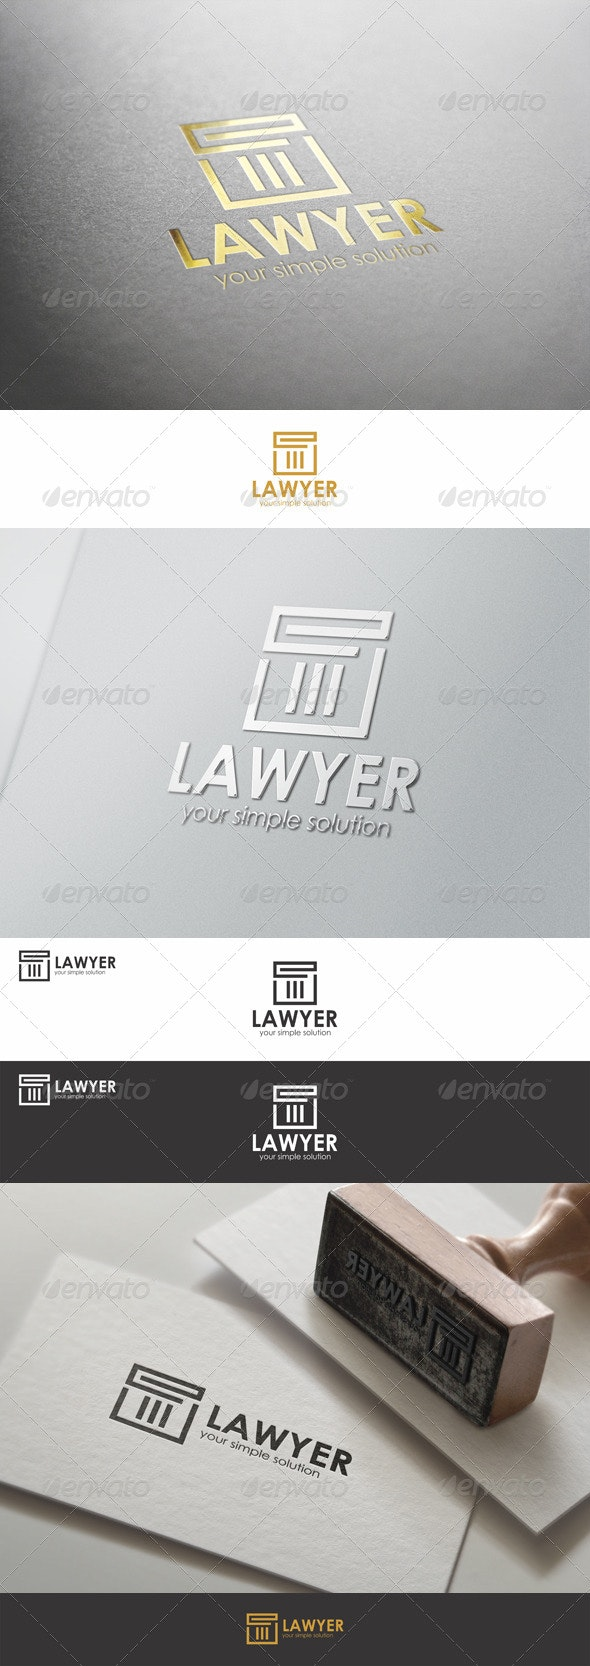 Lawyer - Justice Firm Logo